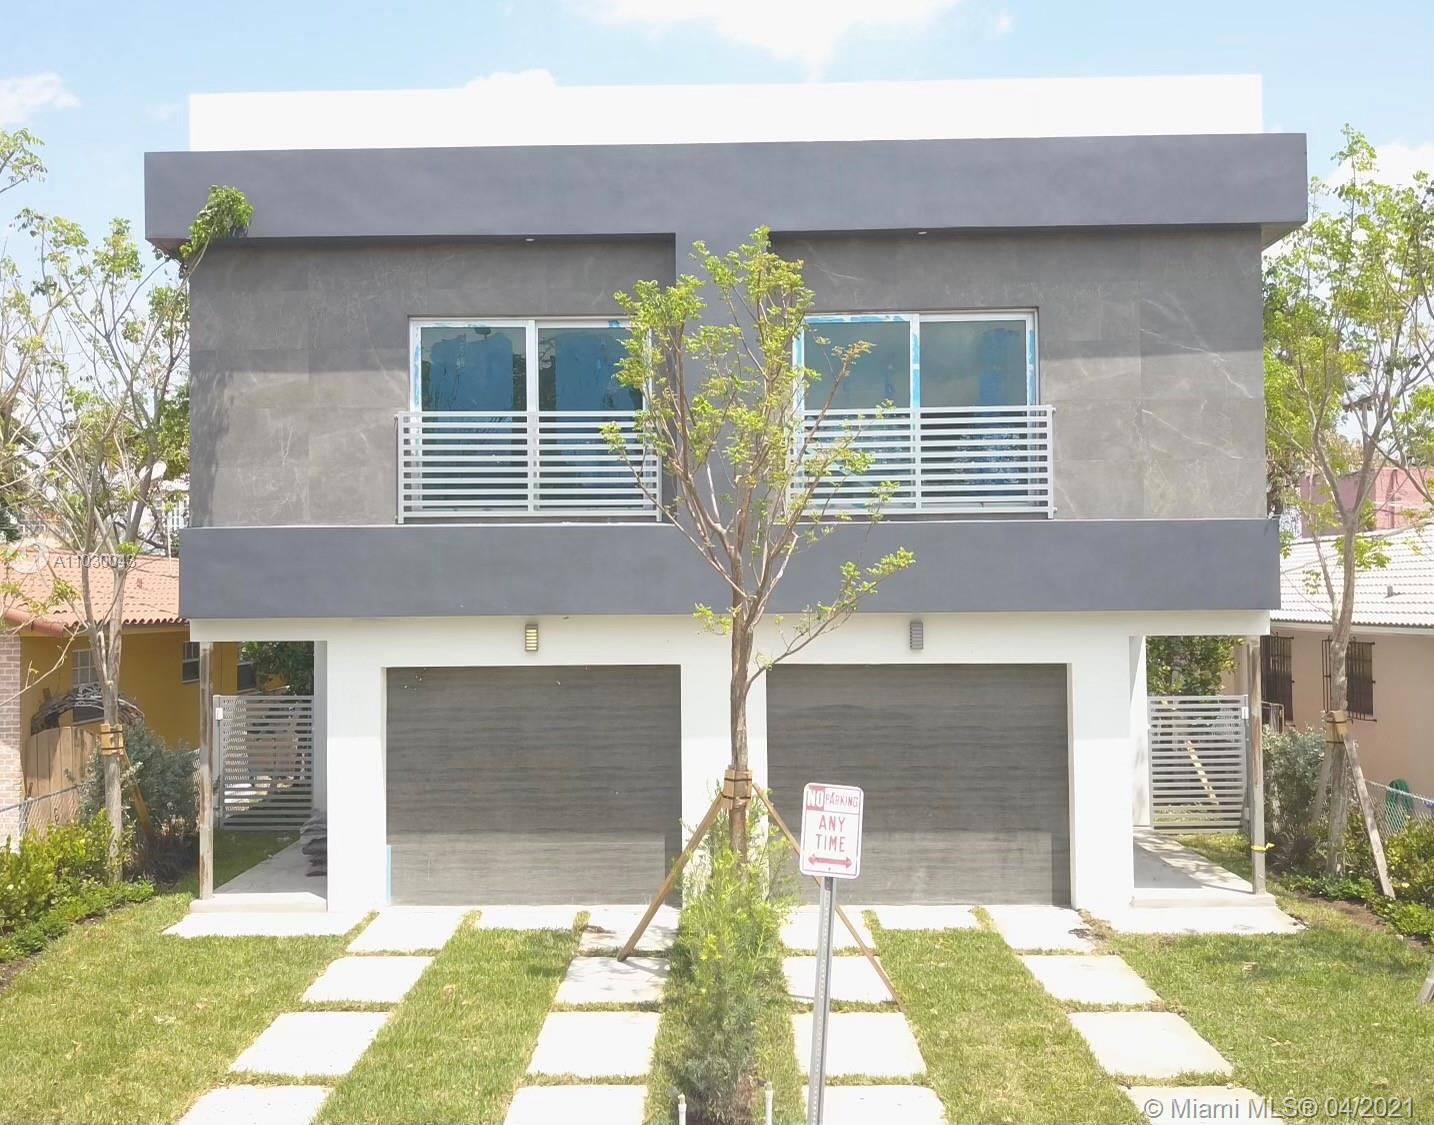 """***ATTENTION ***STUNNING MODERN BRAND """"NEW CONSTRUCTION"""" 4 BED 3.5 BATH TOWNHOUSE WITH POOL. 2 MASTER BED.2431 SQFT. GREAT FLOOR PLAN WITH TOP FINISHES. MODERN ITALIAN KITCHEN WITH CALACATTA COUNTERTOPS. FULLY EQUIPPED WITH IMPACT WINDOWS AND DOORS. AMAZING LOCATION, JUST A FEW MINUTES AWAY FROM CORAL GABLES, COCONUT GROVE, AND THE MIA AIRPORT .2 BLOCKS AWAY FROM CORAL GABLES HOSPITAL AND NEIBY RESTAURANTS AND SHOPPING."""